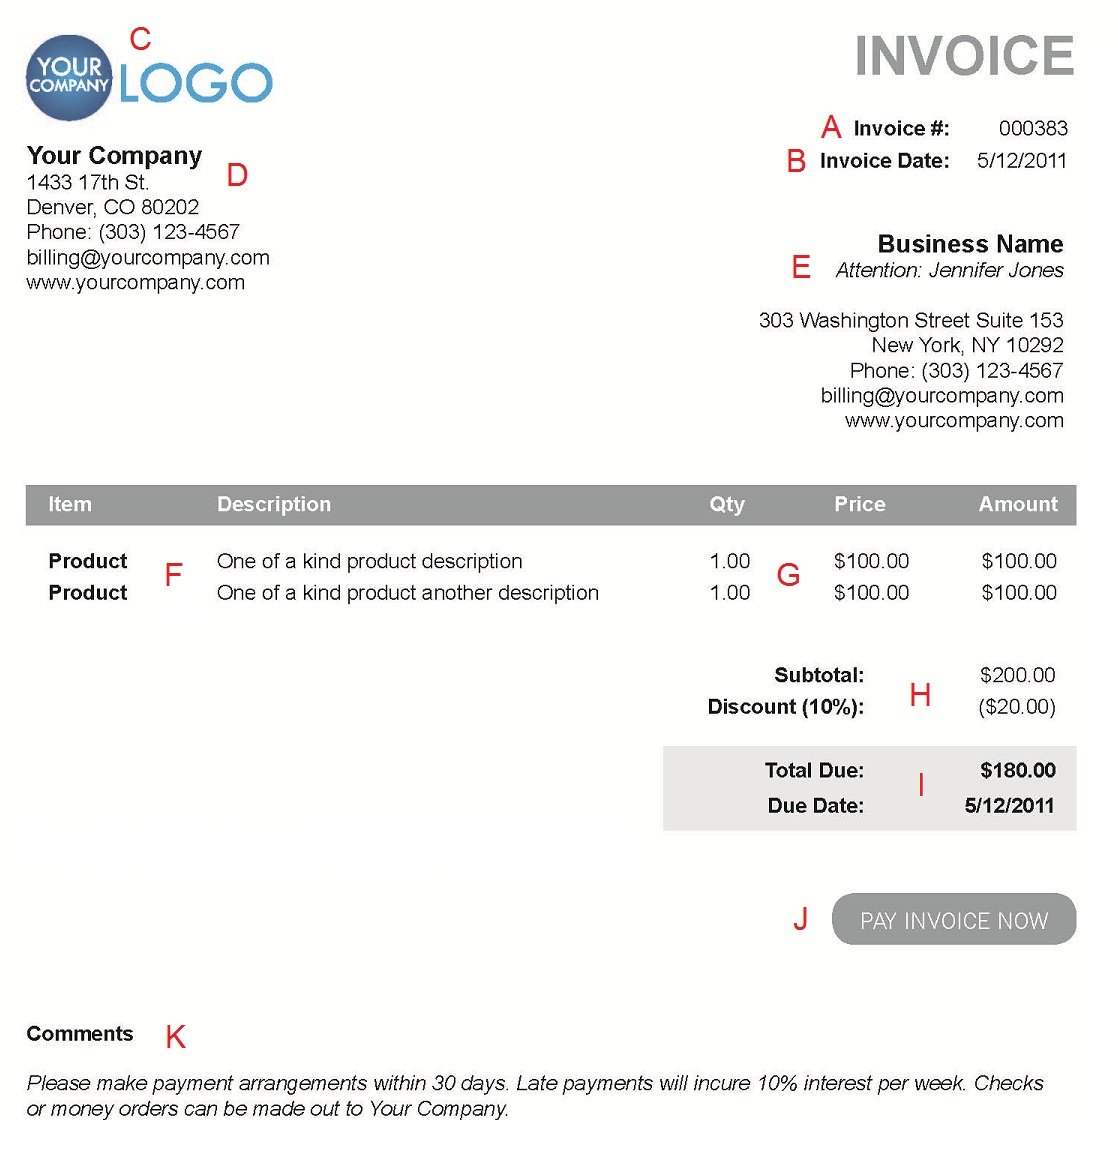 Centralasianshepherdus  Stunning The  Different Sections Of An Electronic Payment Invoice With Heavenly A  With Comely Receiving Invoice Also Sliq Invoicing Plus In Addition I Invoice And Invoice Template For Services Provided As Well As Google Apps Invoicing Additionally Bill Invoice Software From Paysimplecom With Centralasianshepherdus  Heavenly The  Different Sections Of An Electronic Payment Invoice With Comely A  And Stunning Receiving Invoice Also Sliq Invoicing Plus In Addition I Invoice From Paysimplecom